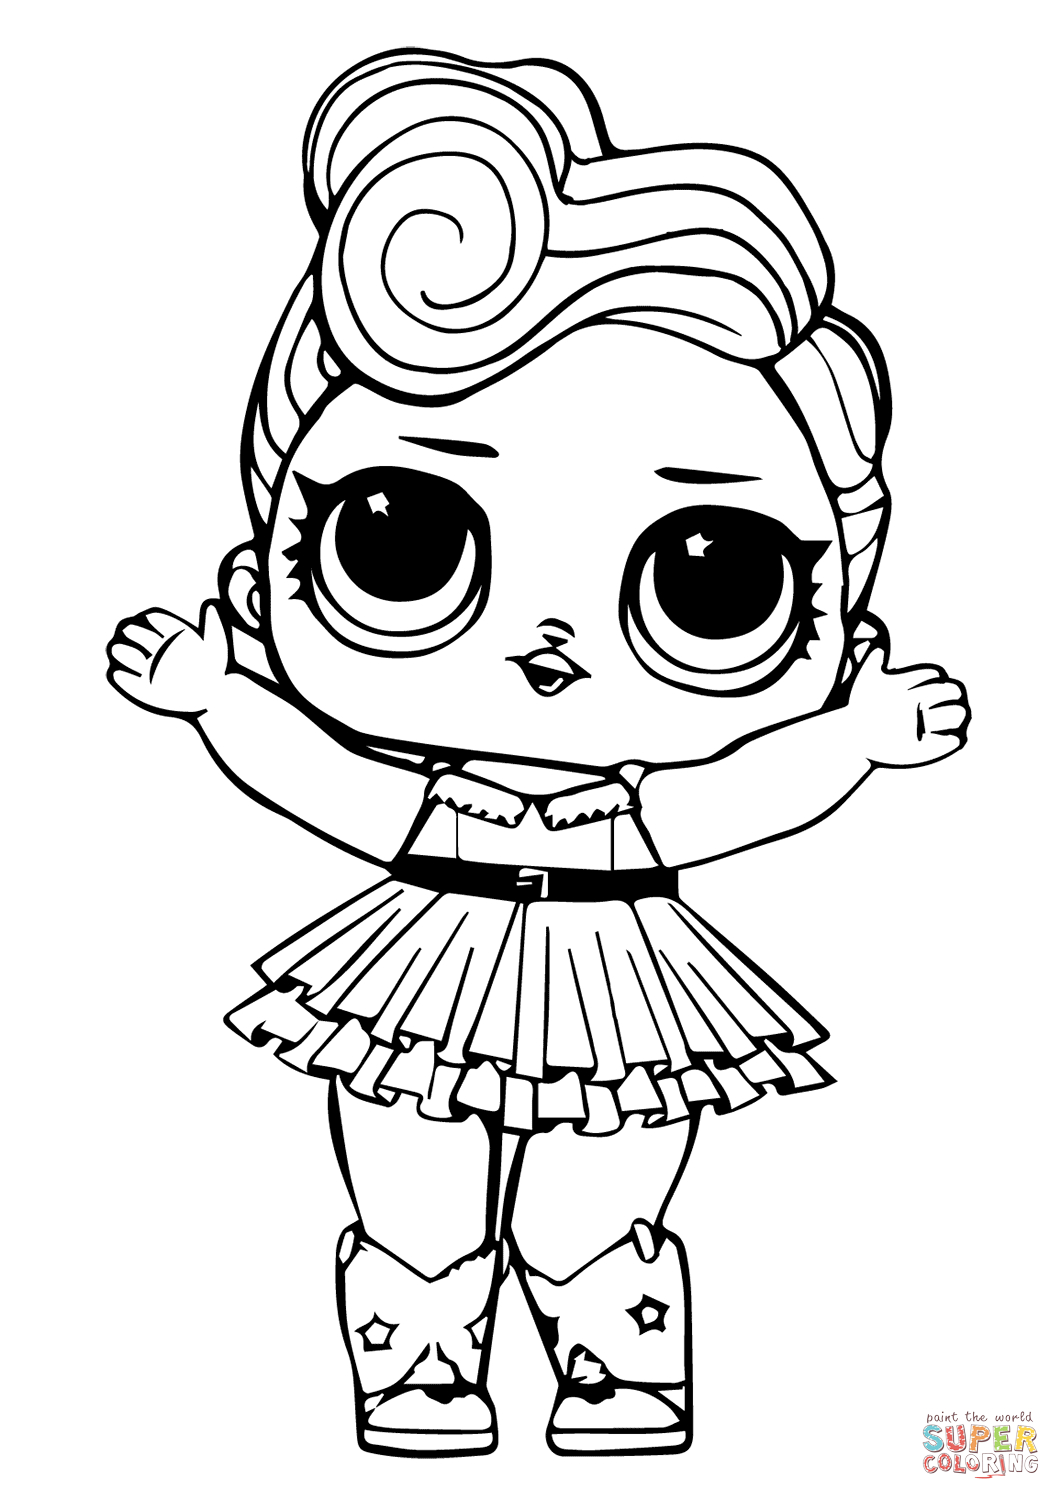 Lol Doll Luxe Coloring Page | Free Printable Coloring Pages | Lol - Www Free Printable Coloring Pages